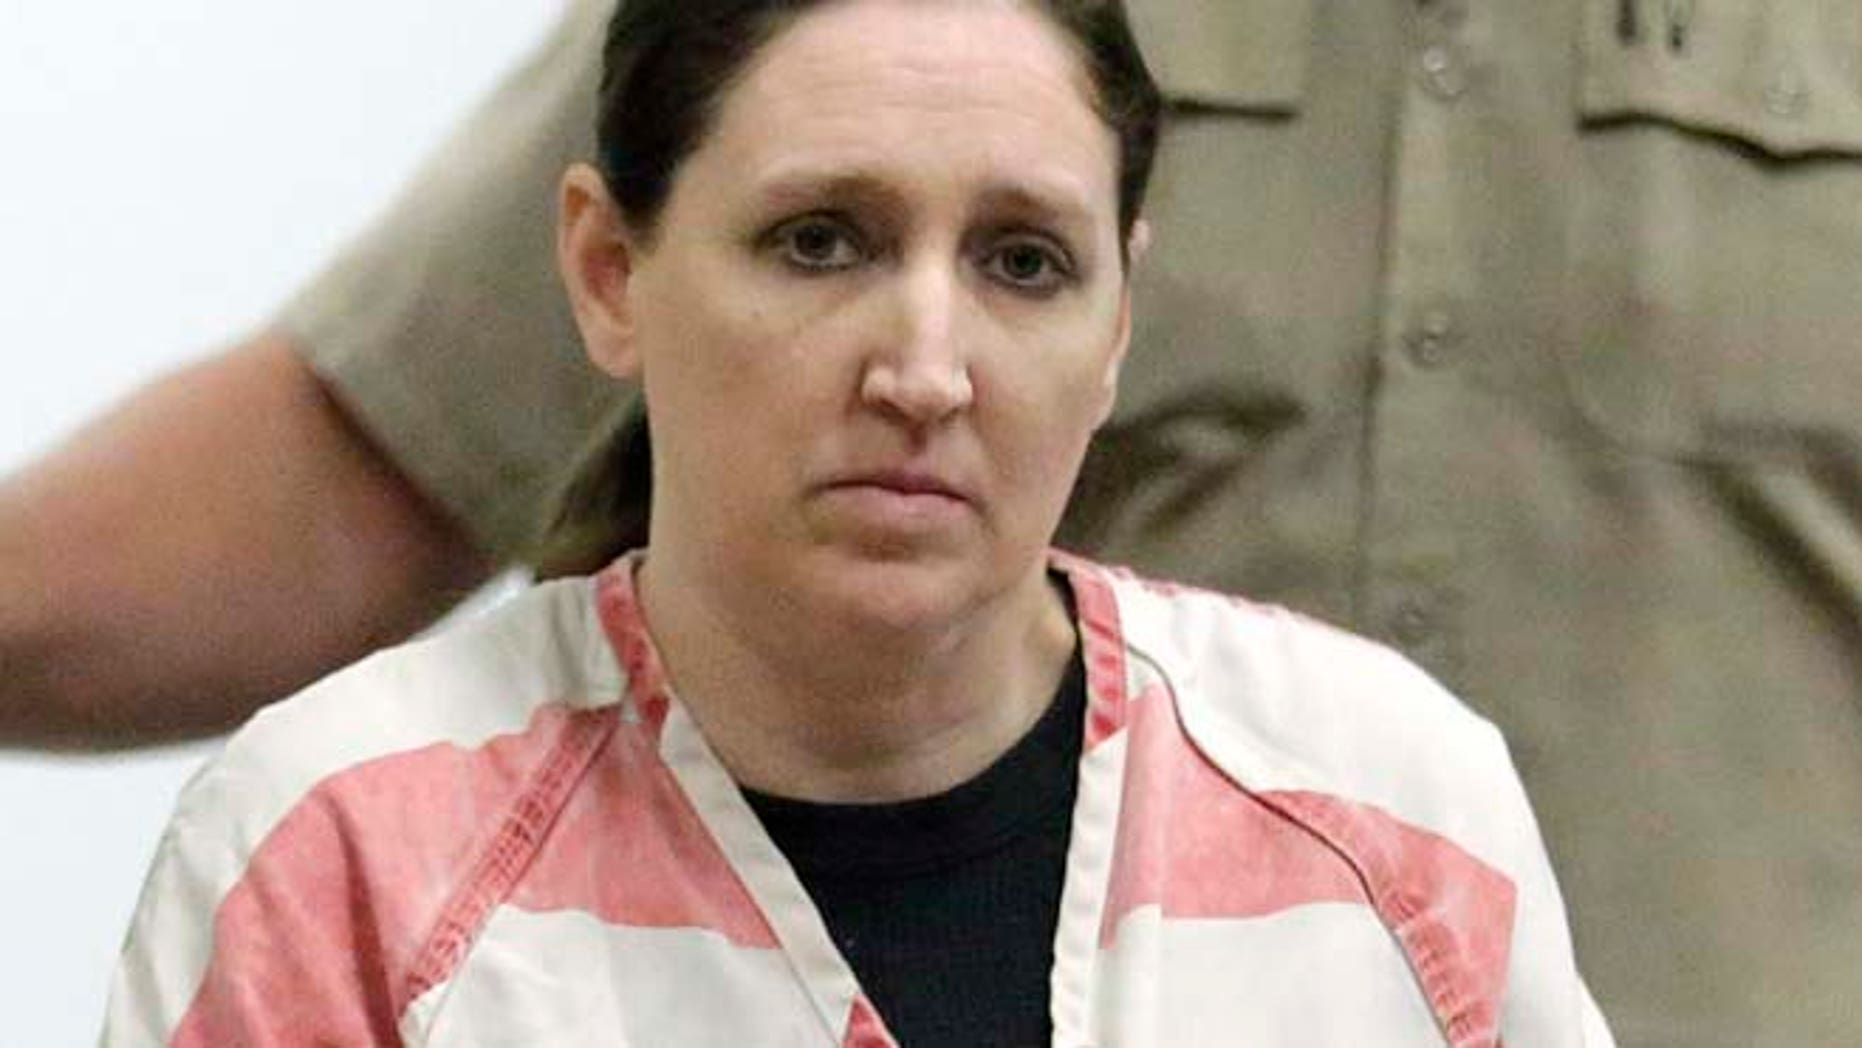 Dec. 8, 2014: Megan Huntsman, who is accused of killing six of her seven newborns and storing all of their bodies in her garage, appears in court in Provo, Utah. (AP)